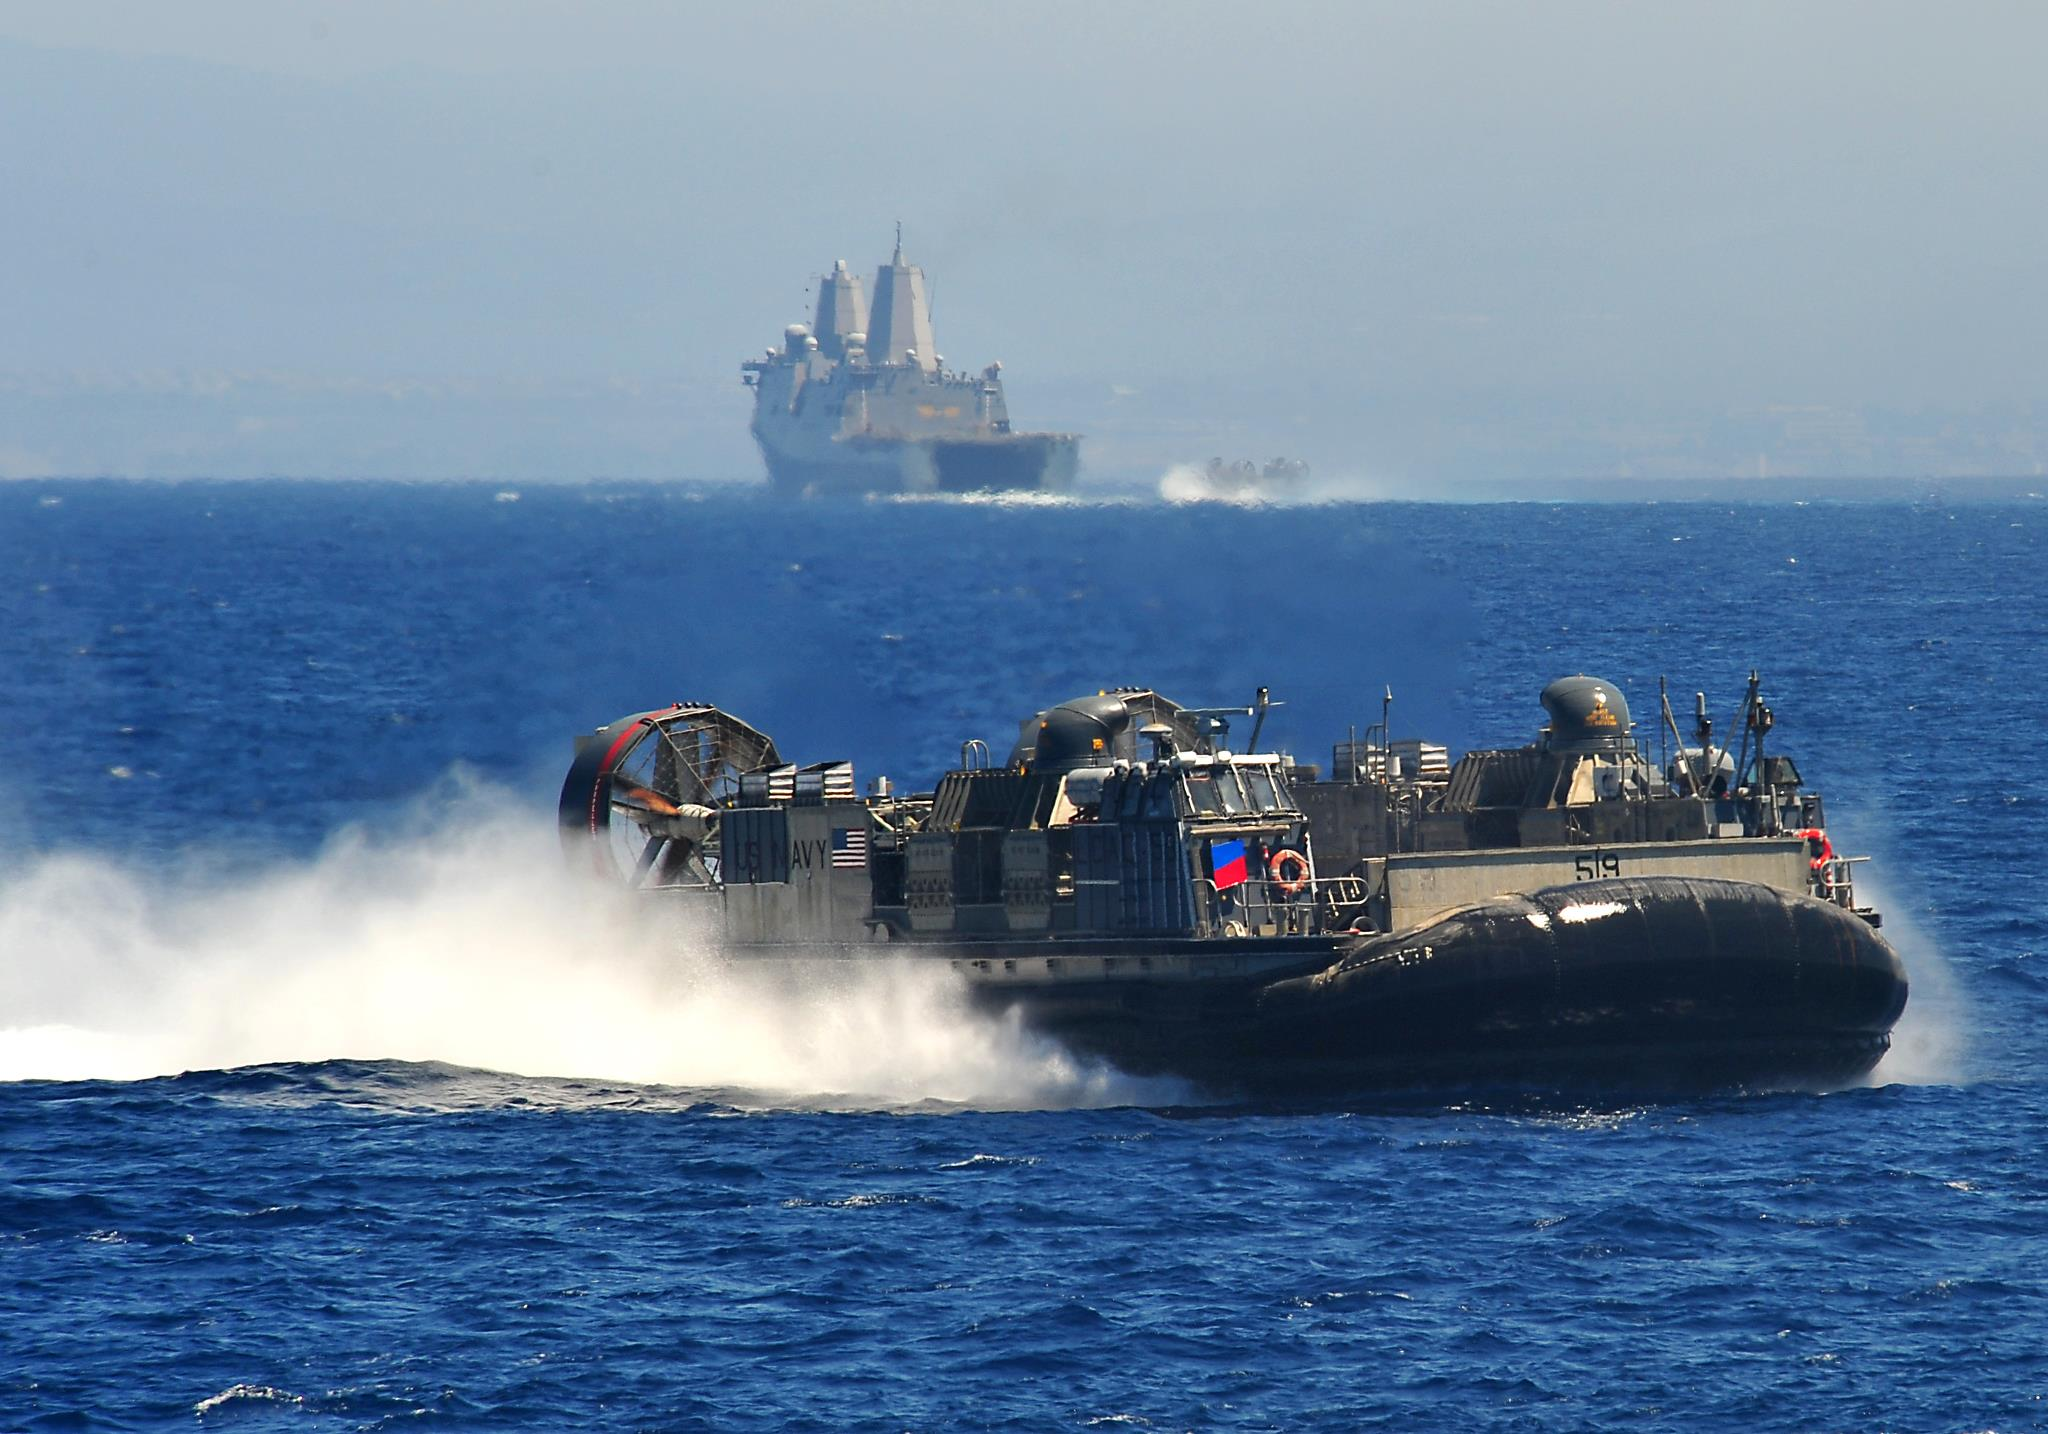 Guns and Military 70% of the Earth's surface is water. Your Navy has it covered.